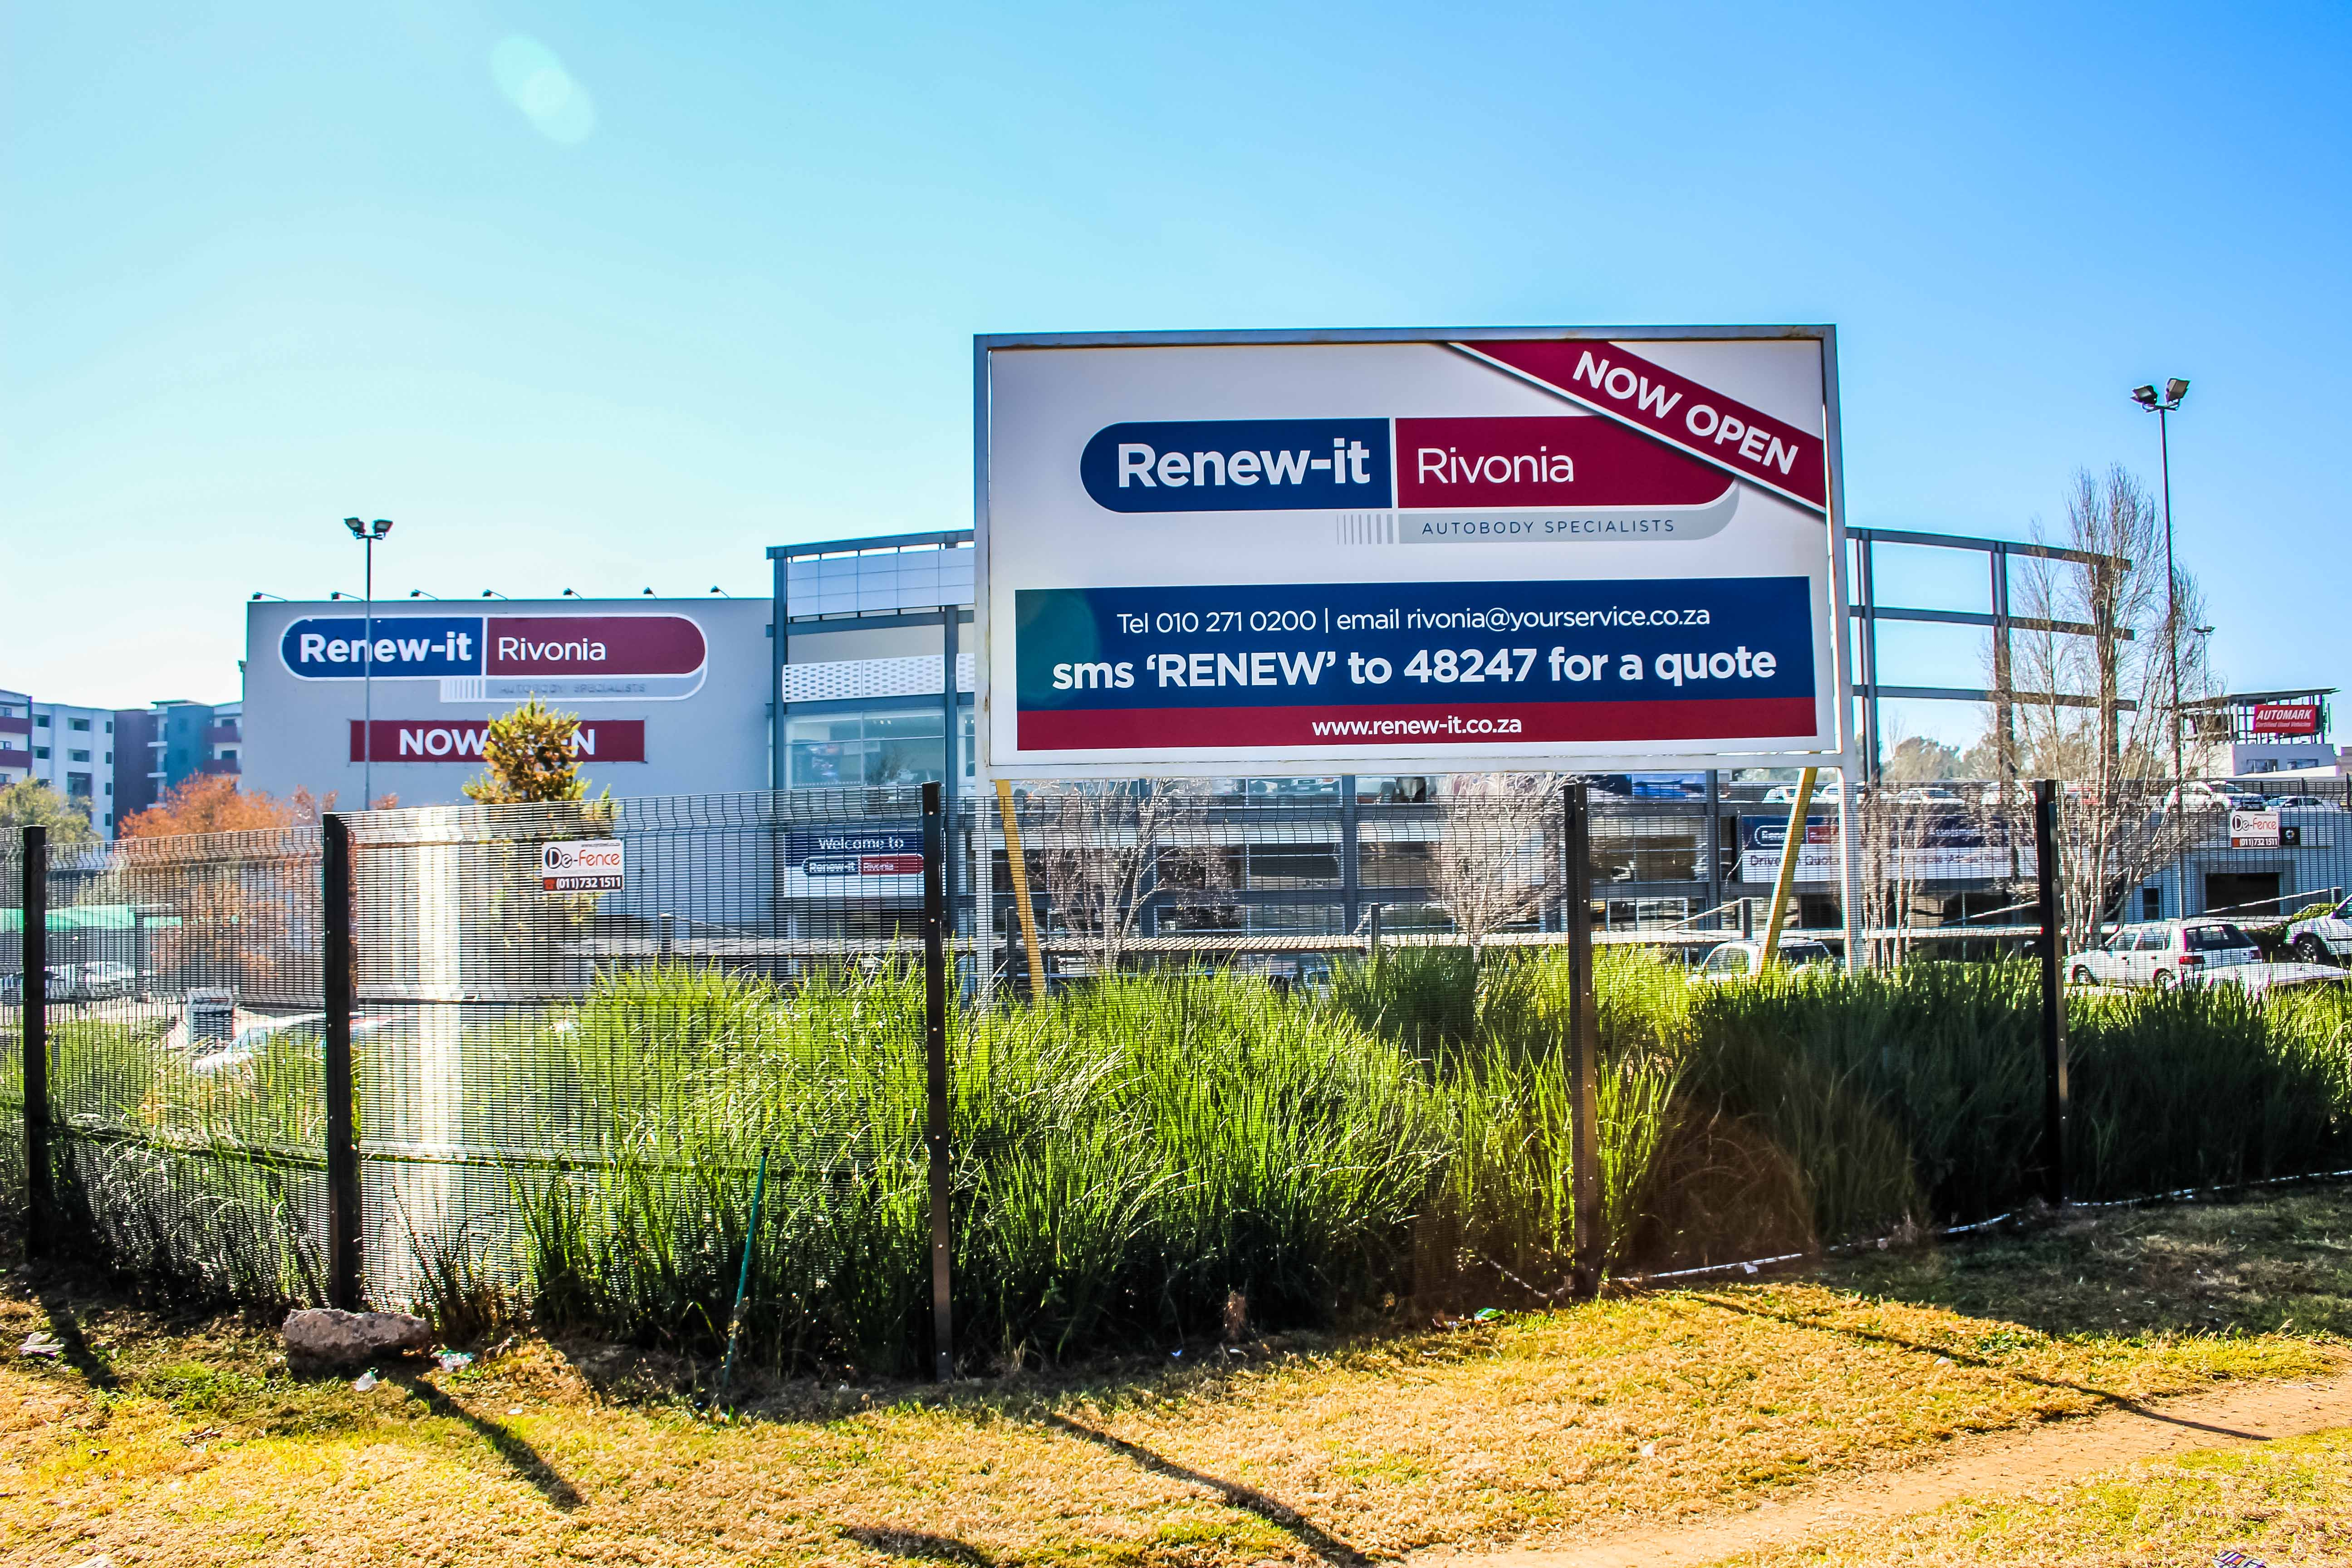 Renew-It Rivonia